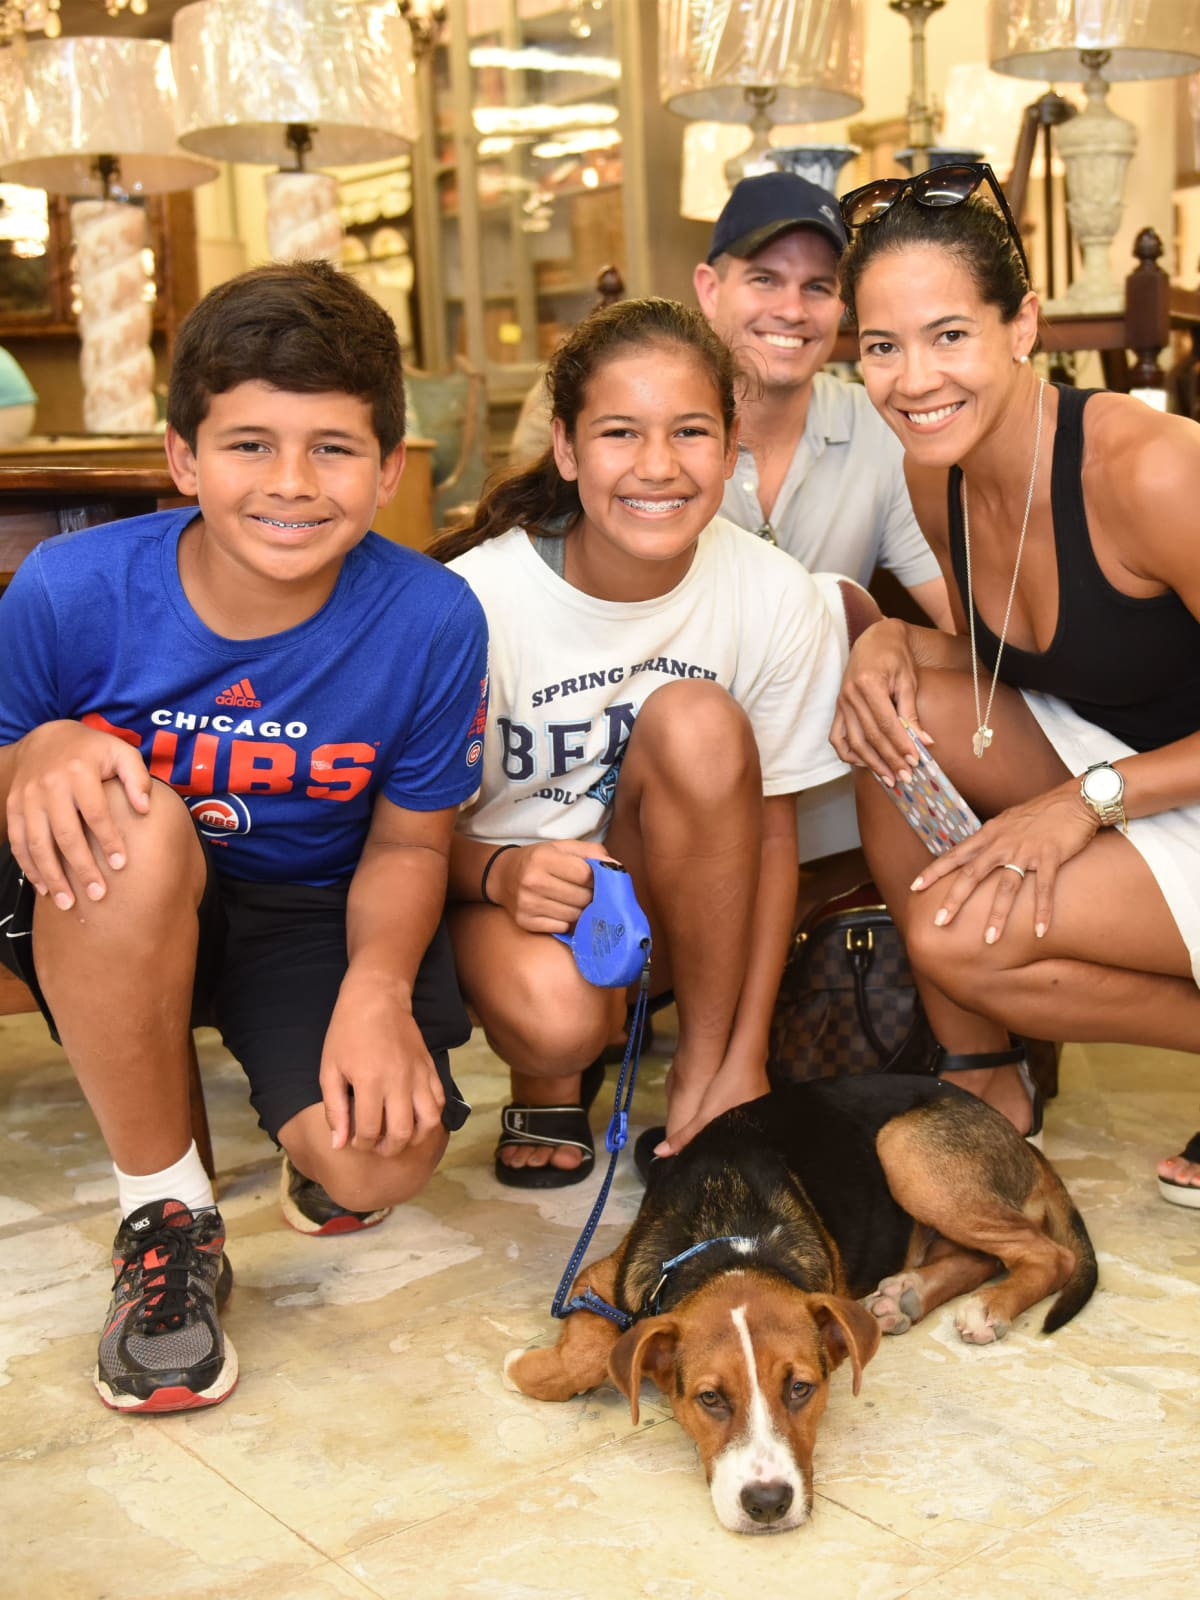 News, Shelby, Barks & Bubbles, Memorial Antiques, July 2015, Romero Family and pooch Harper